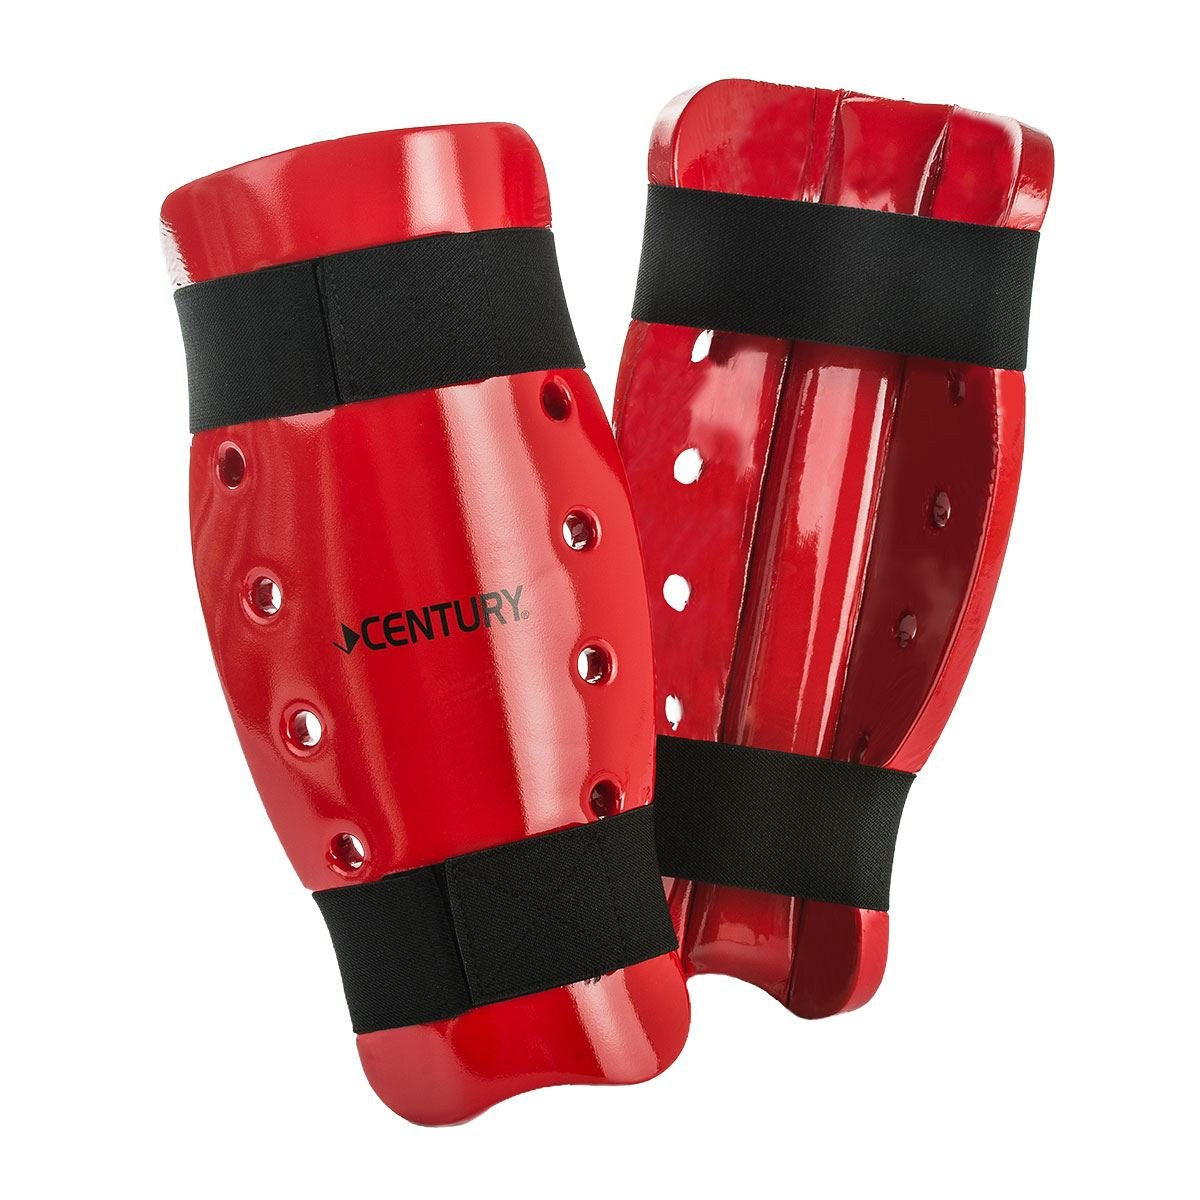 Century Kid's Martial Arts Student Sparring Shin Guards - White